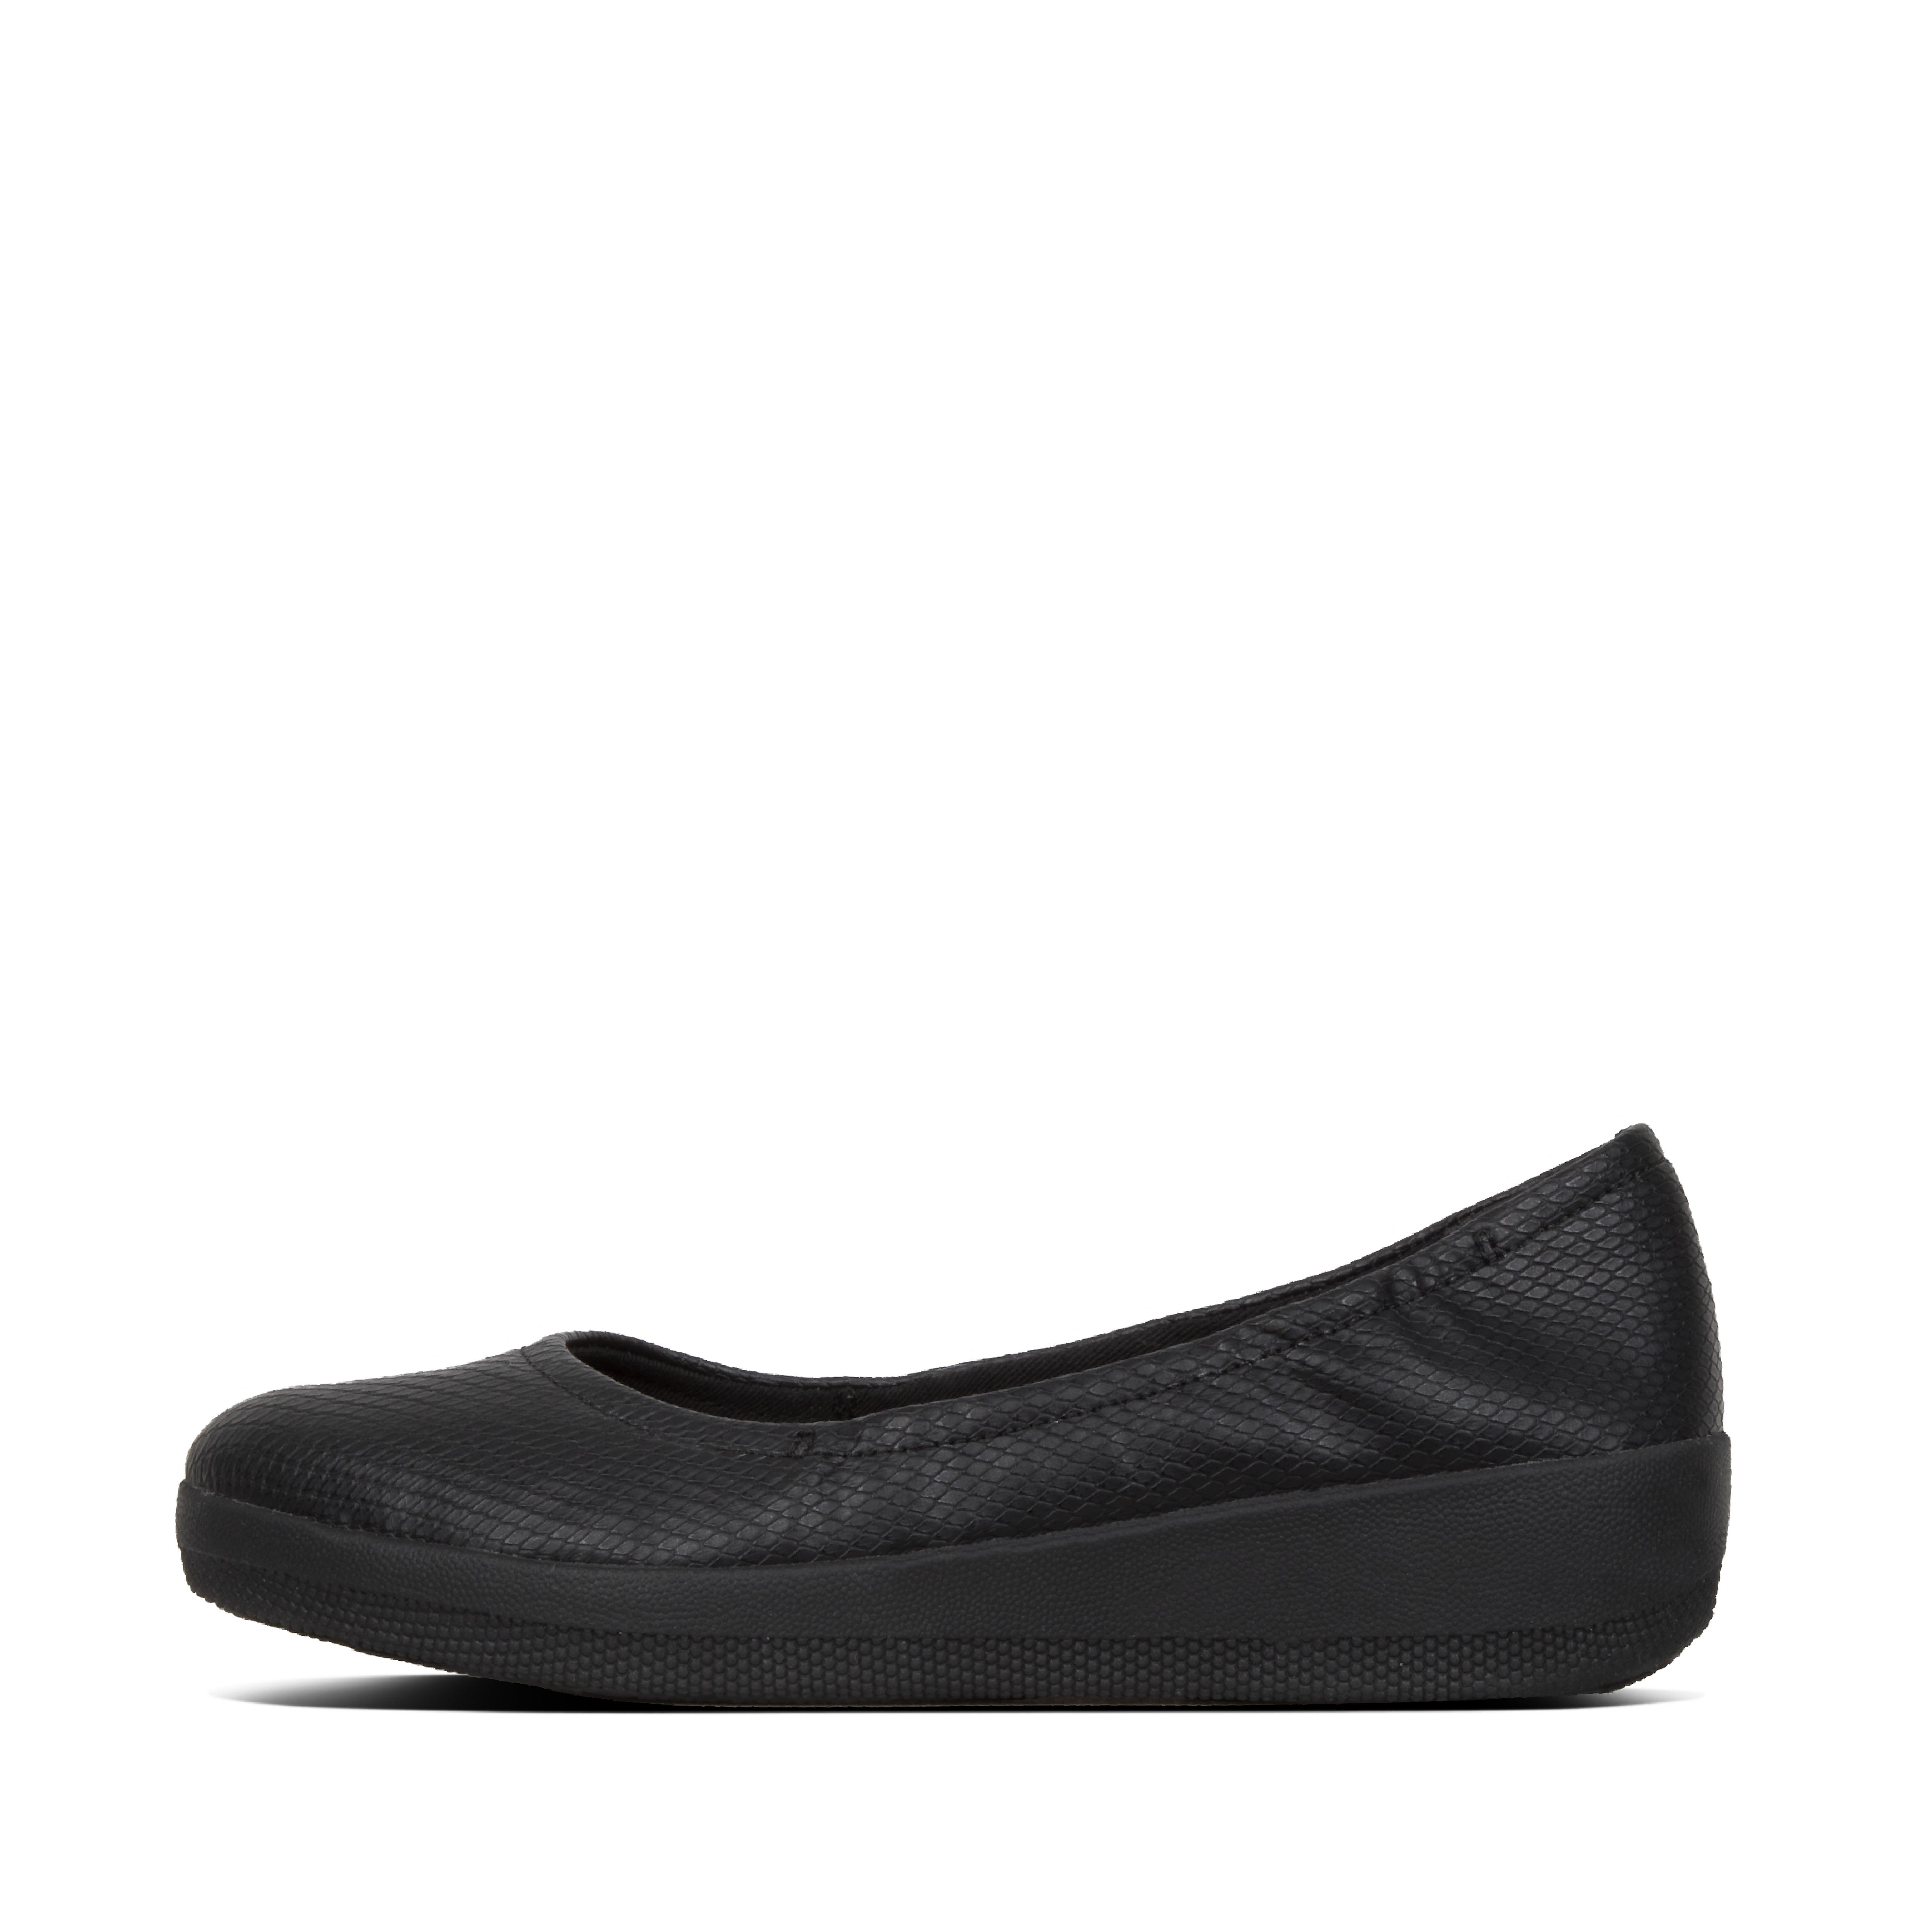 Superlight, super-chic and supercomfortable, these elegant little ballet flats feature classic snake-embossed uppers. With our slimline, ergonomic midsoles underneath, they\\\'re the perfect smart shoes for when tottering around on heels just isn\\\'t an option.